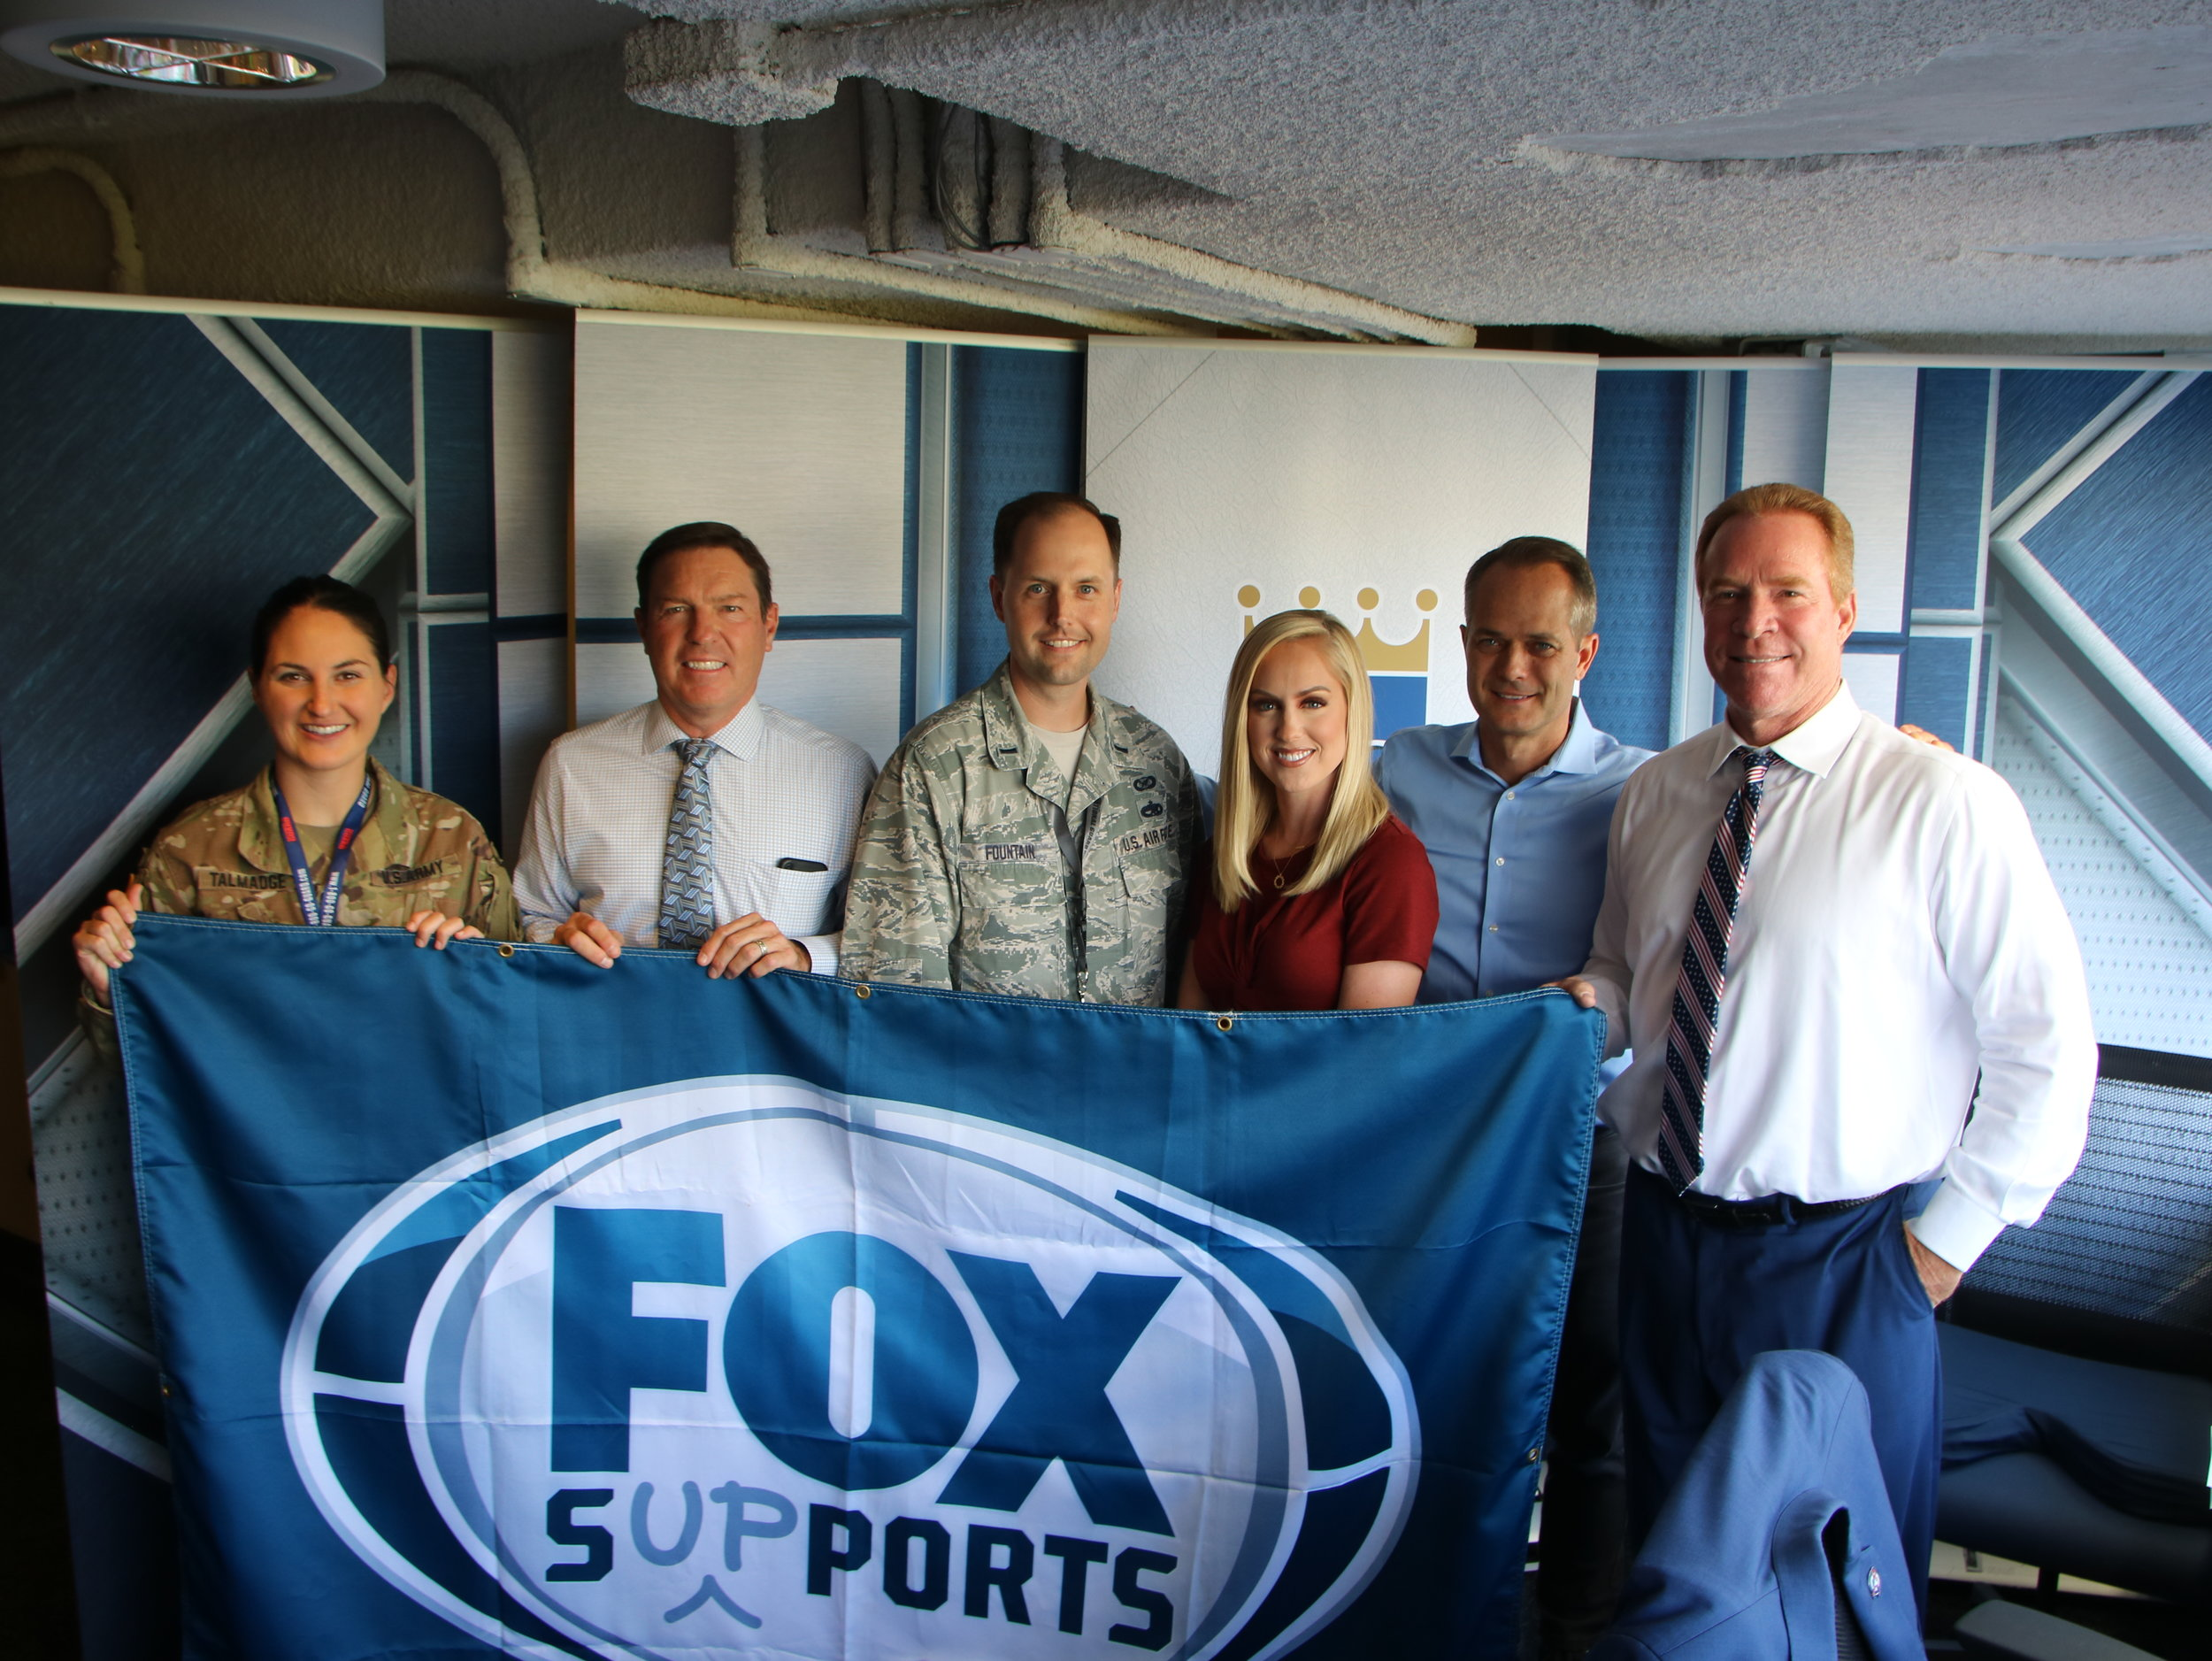 Rex Hudler and his fellow broadcasters honor members of the military through Fox Sports Supports